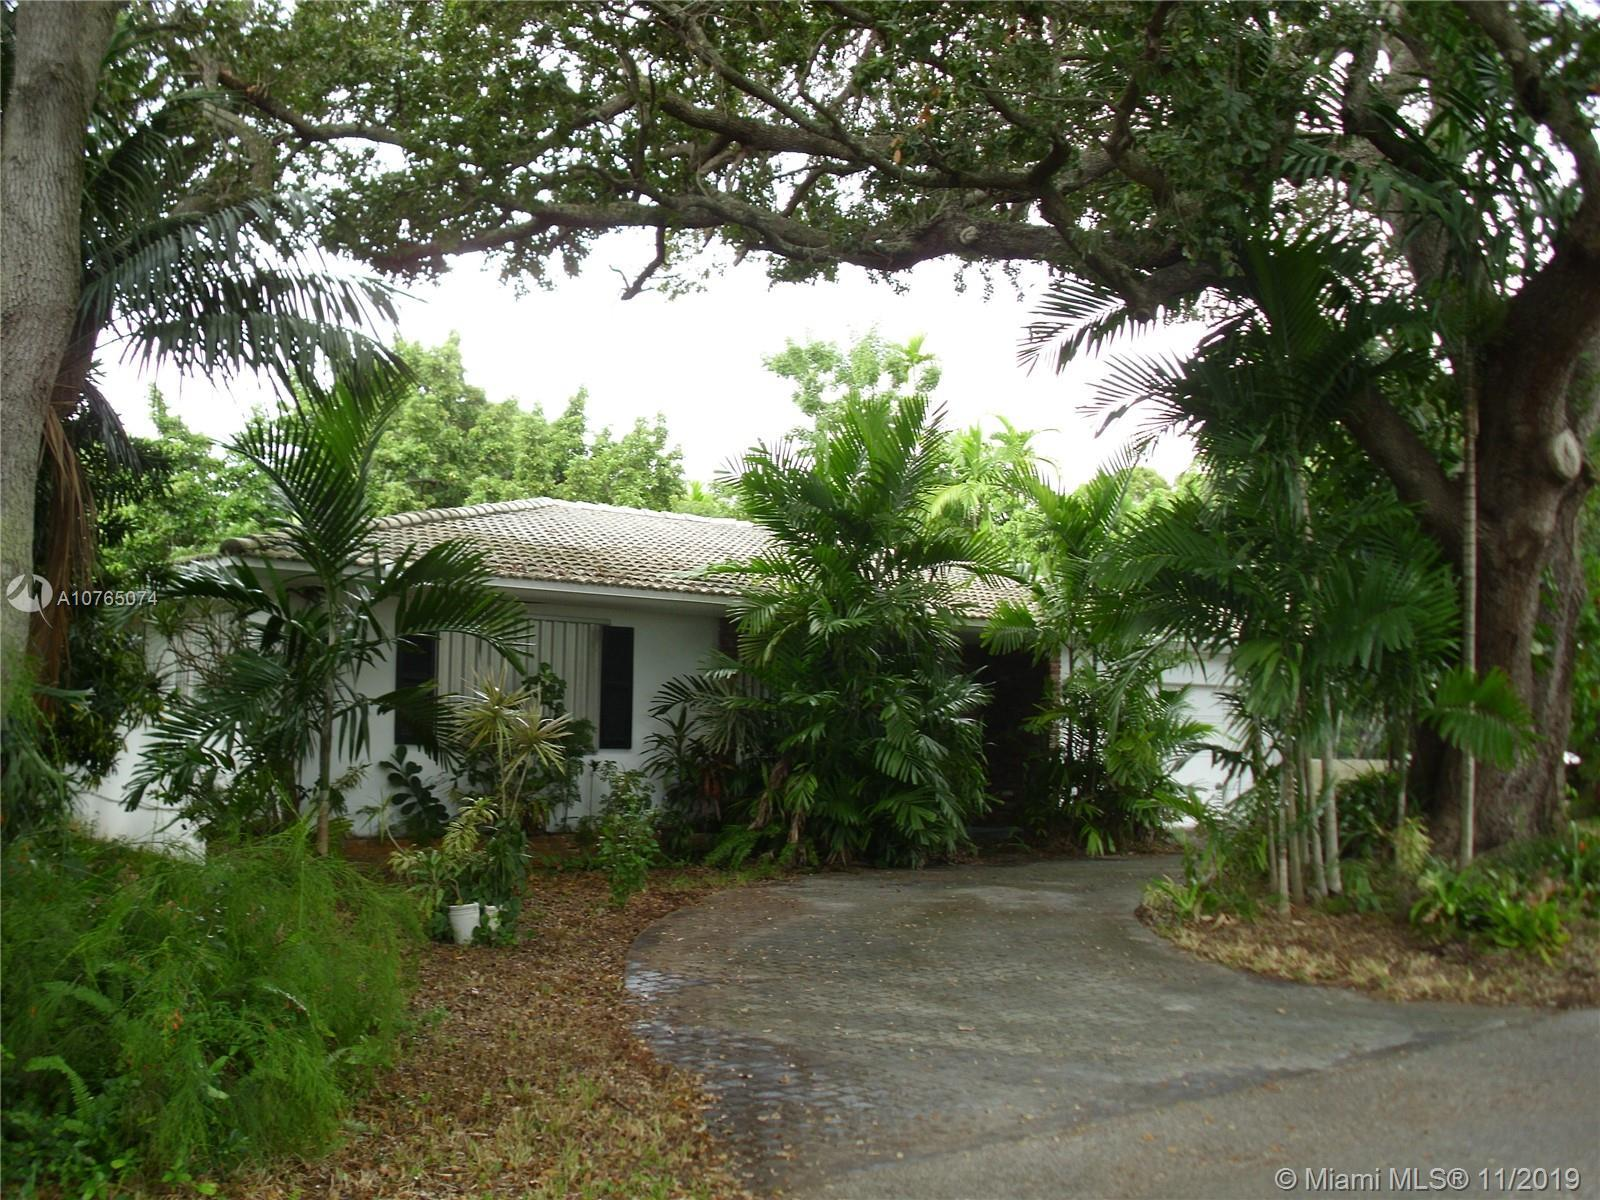 Spacious Miami Shores 3 bedroom 2 bath home with 2 car garage, & central air. Florida room and famil